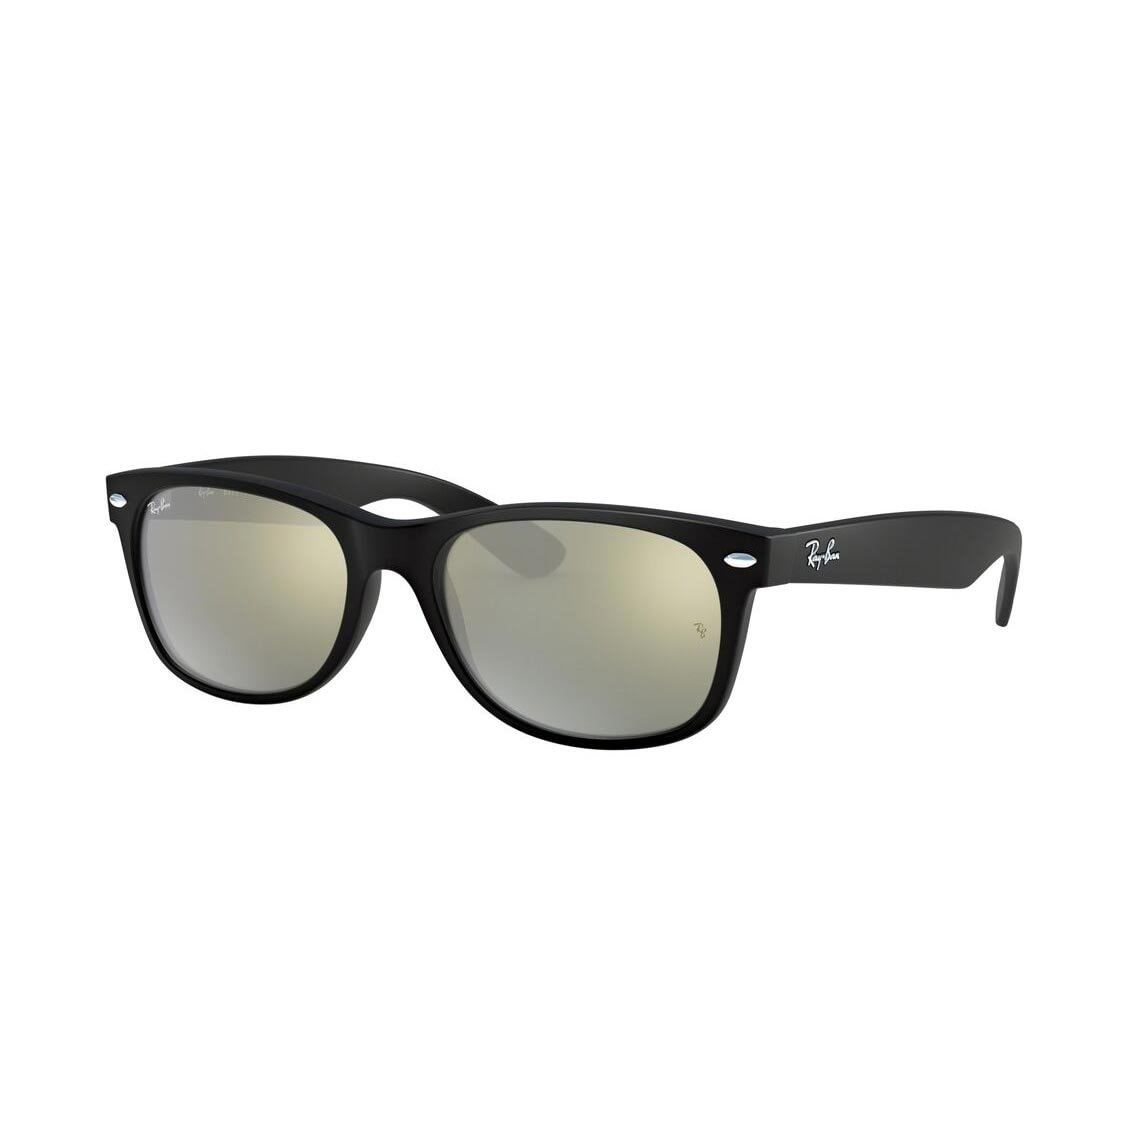 Ray-Ban New Wayfarer RB2132 622/30 52